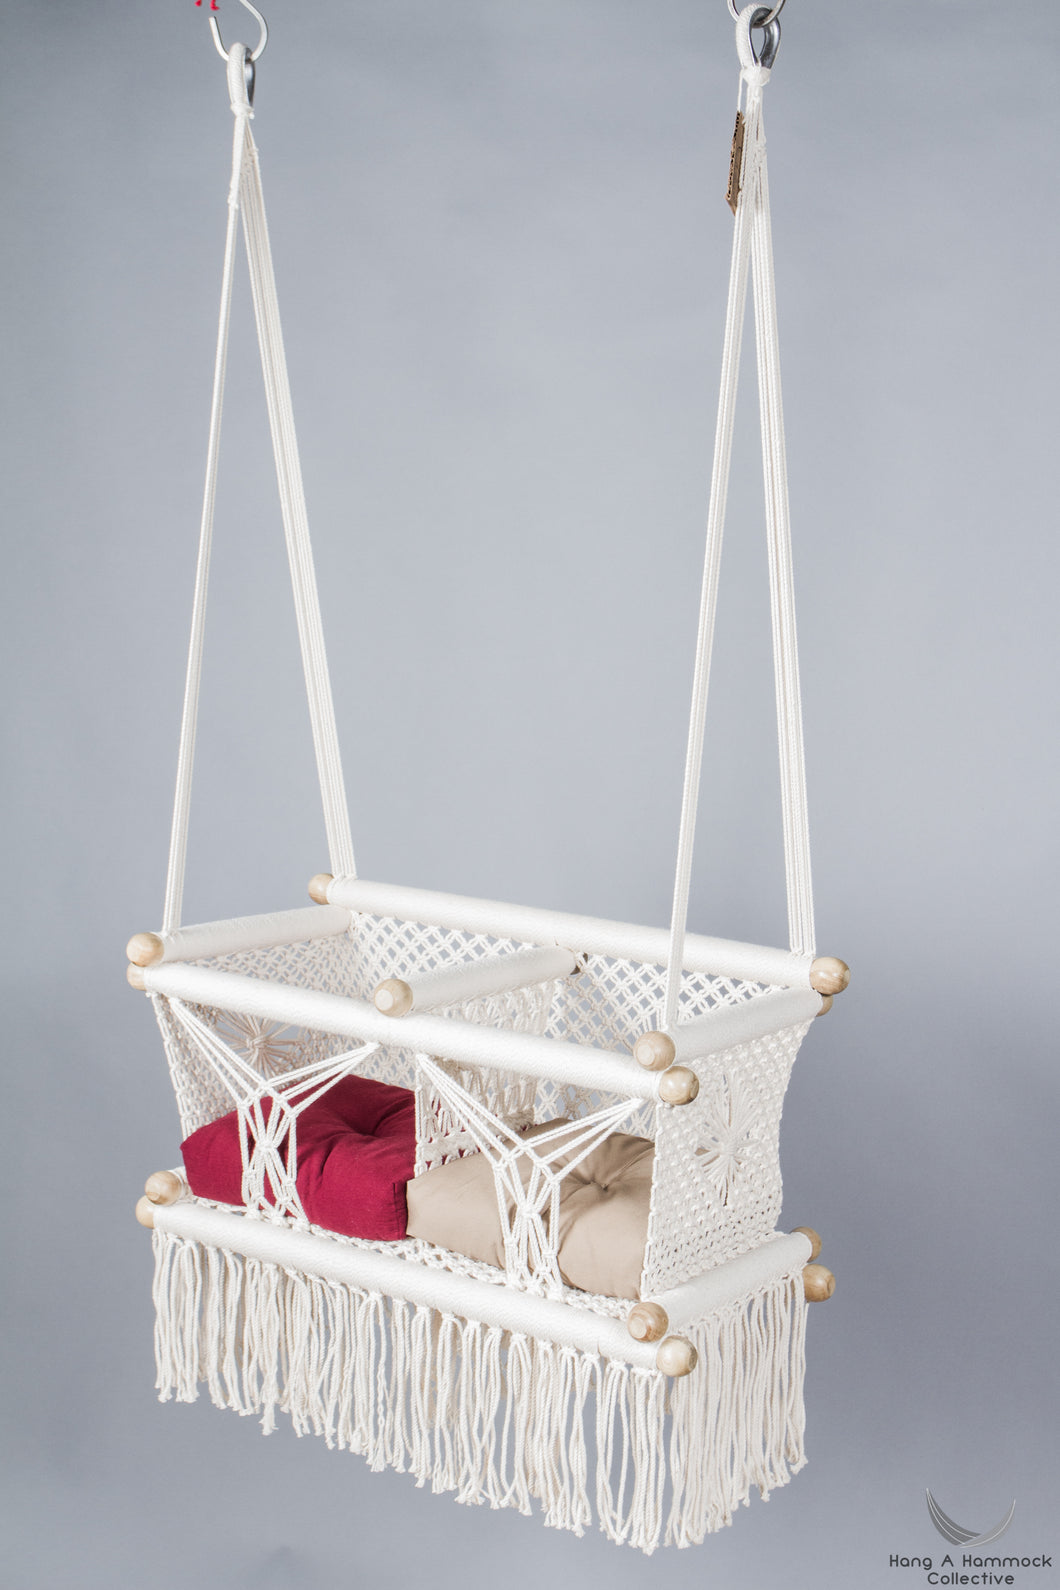 Baby Swing Chair In Macrame Hangahammockcollective